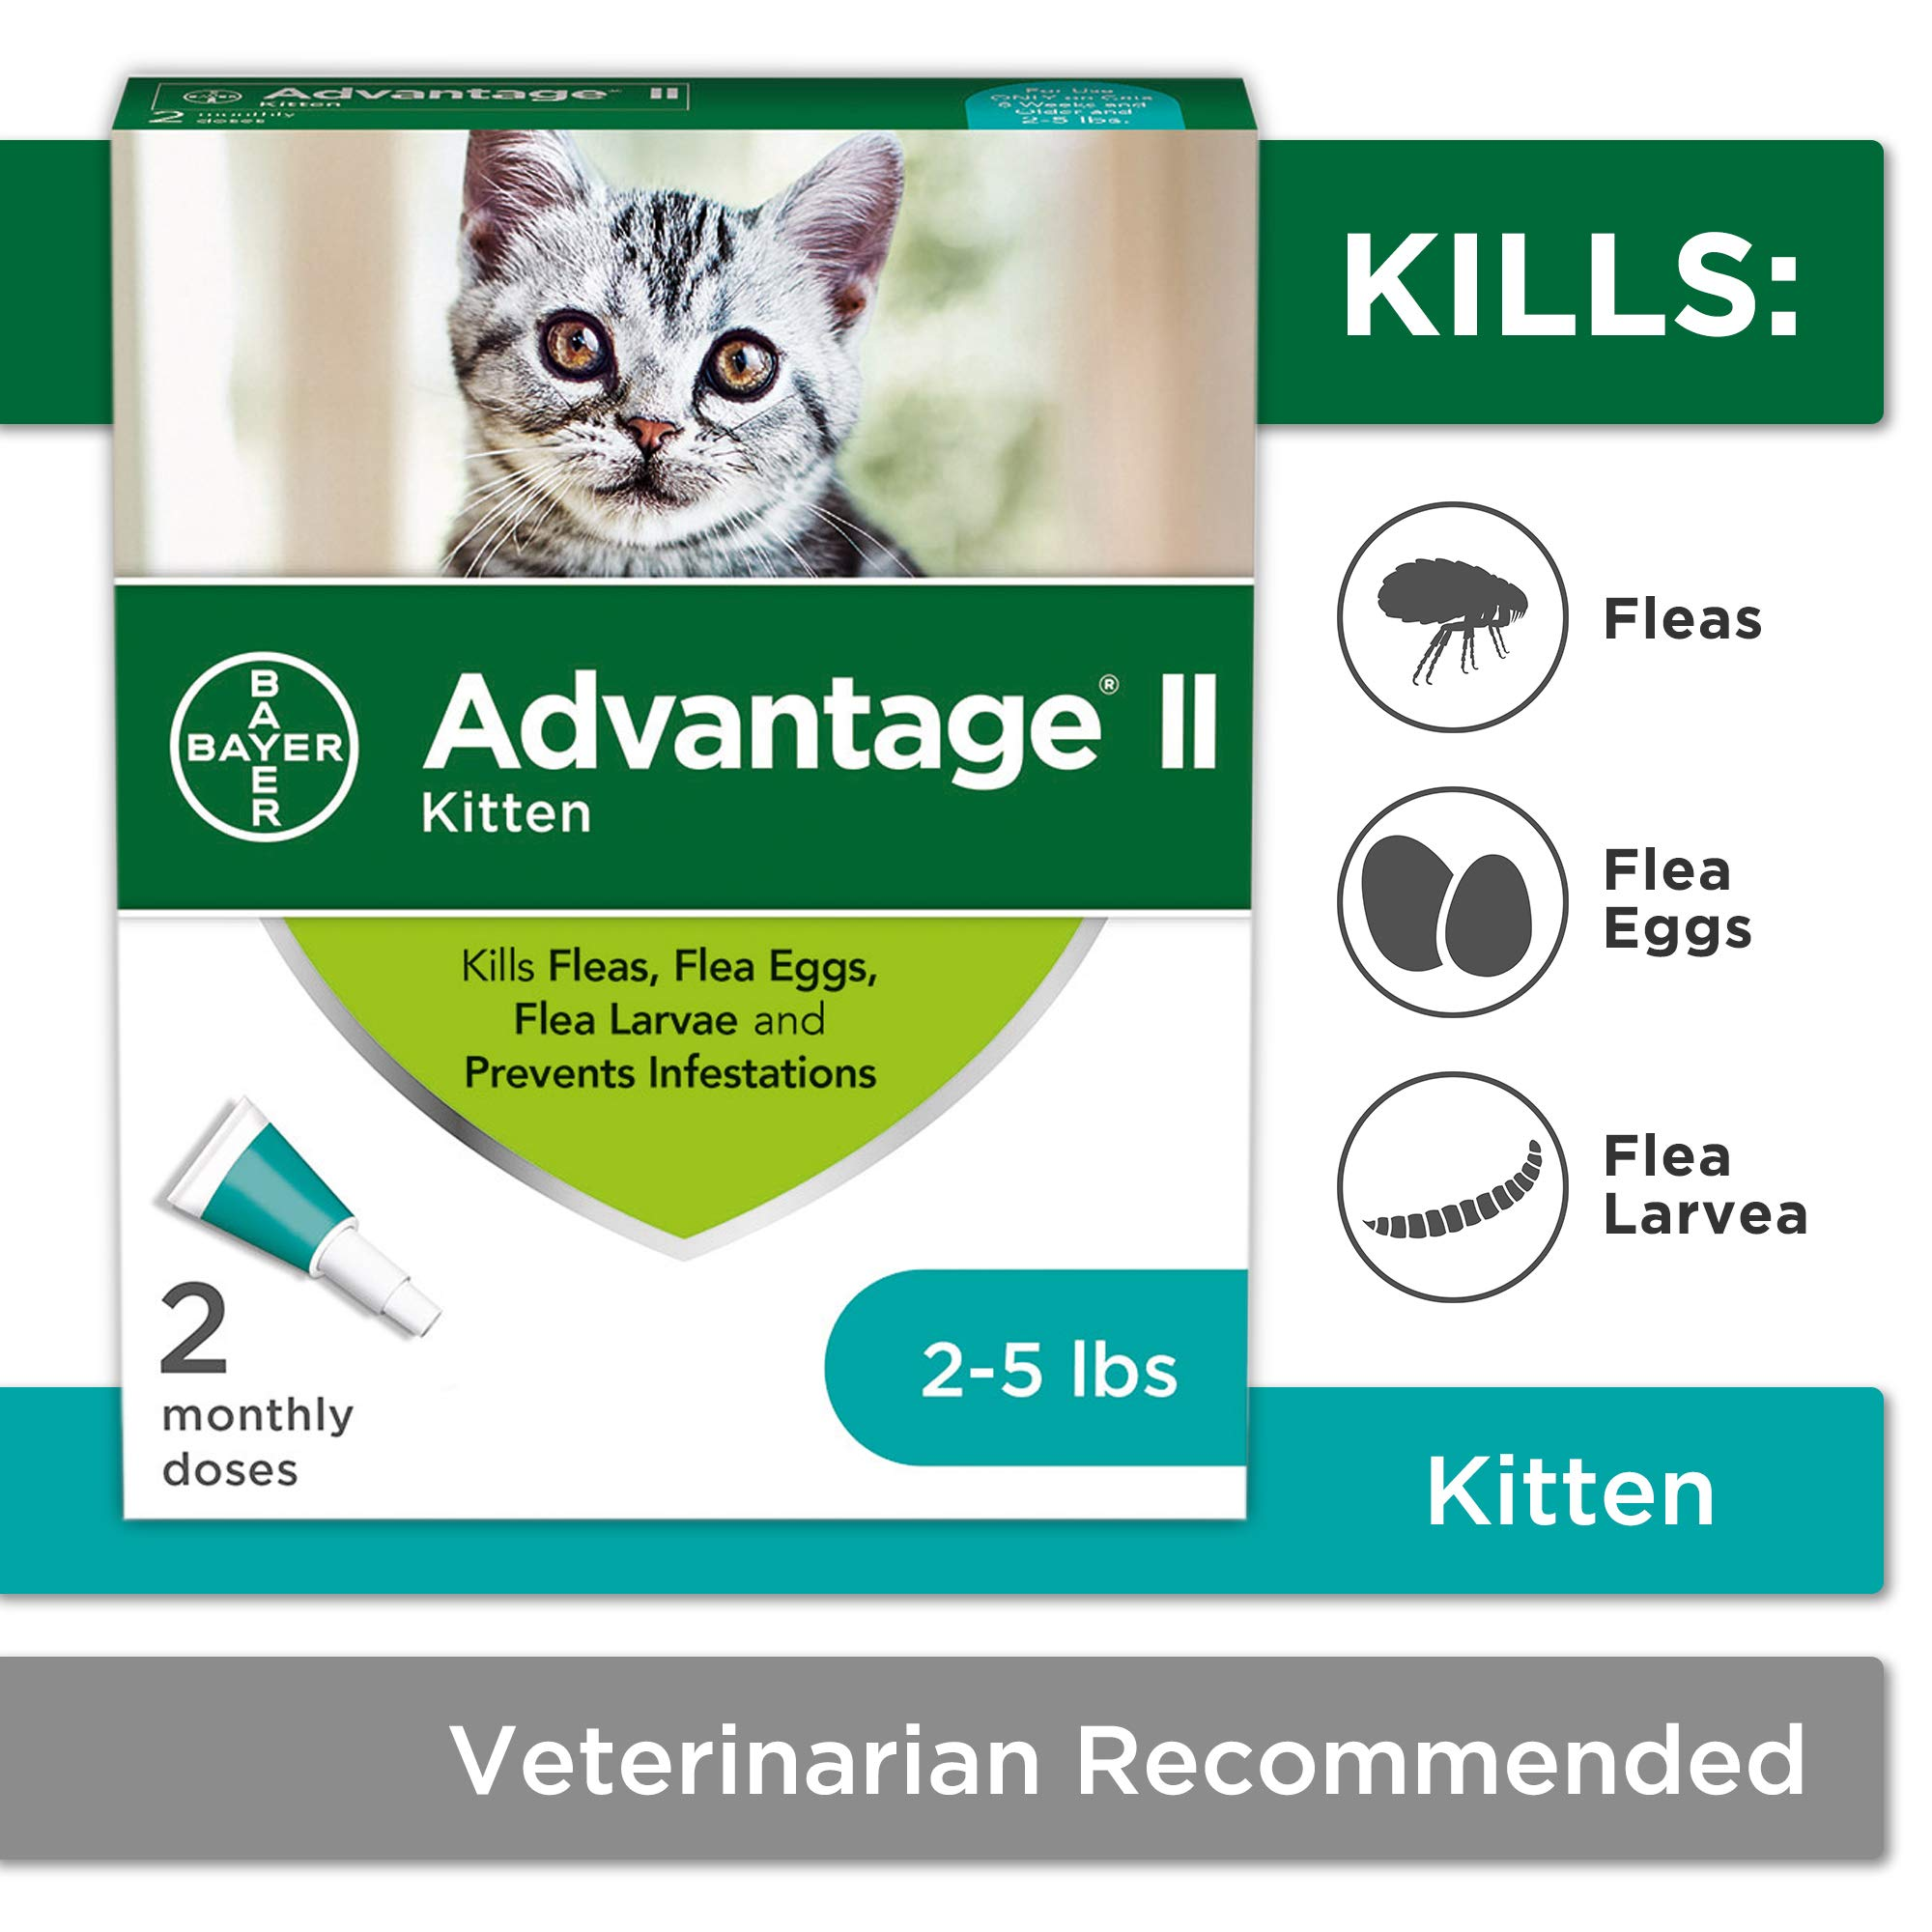 Flea Prevention for Kittens, 2-5 lb, 2 doses, Advantage II by Bayer Animal Health